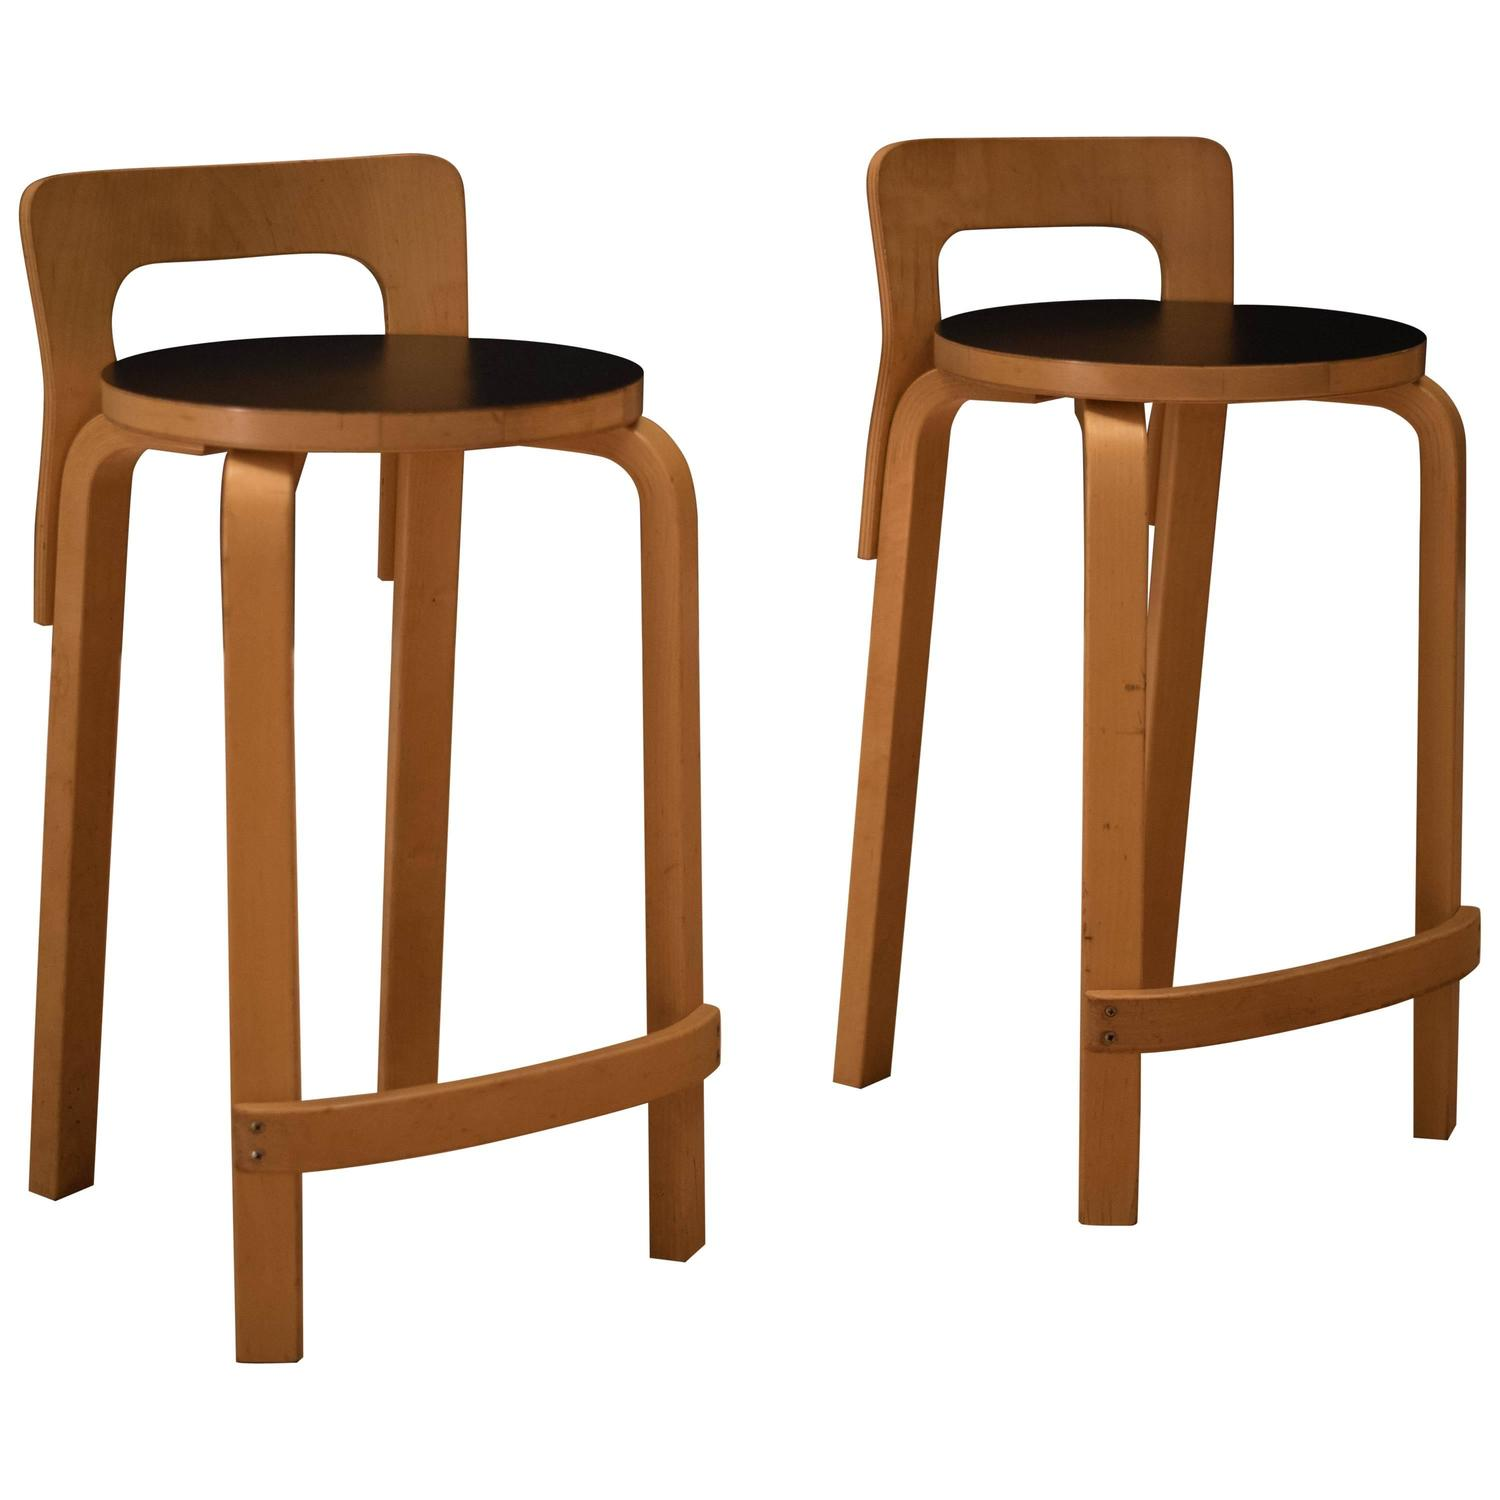 Vintage Alvar Aalto K65 High Chair Stool For Sale At 1stdibs